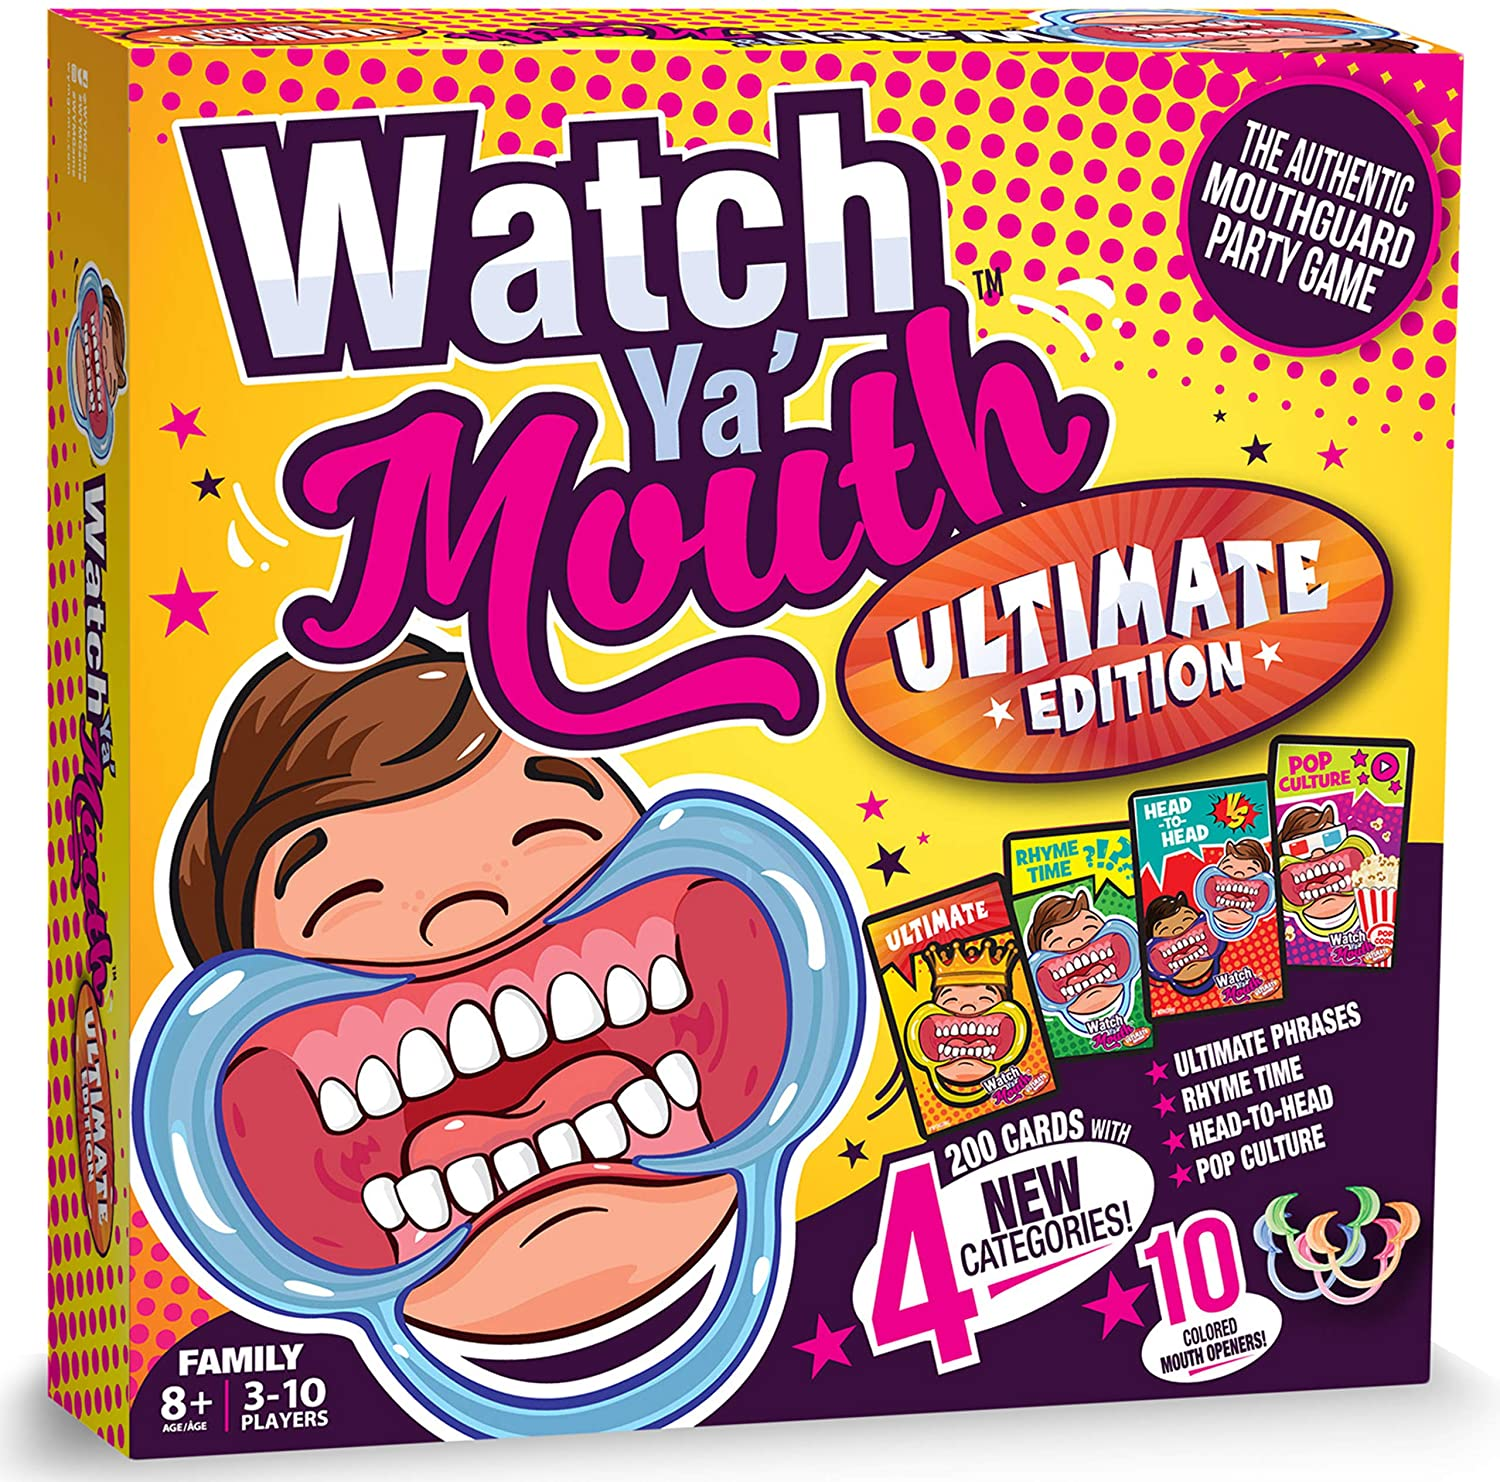 Watch Ya Mouth Game to help survive isolation